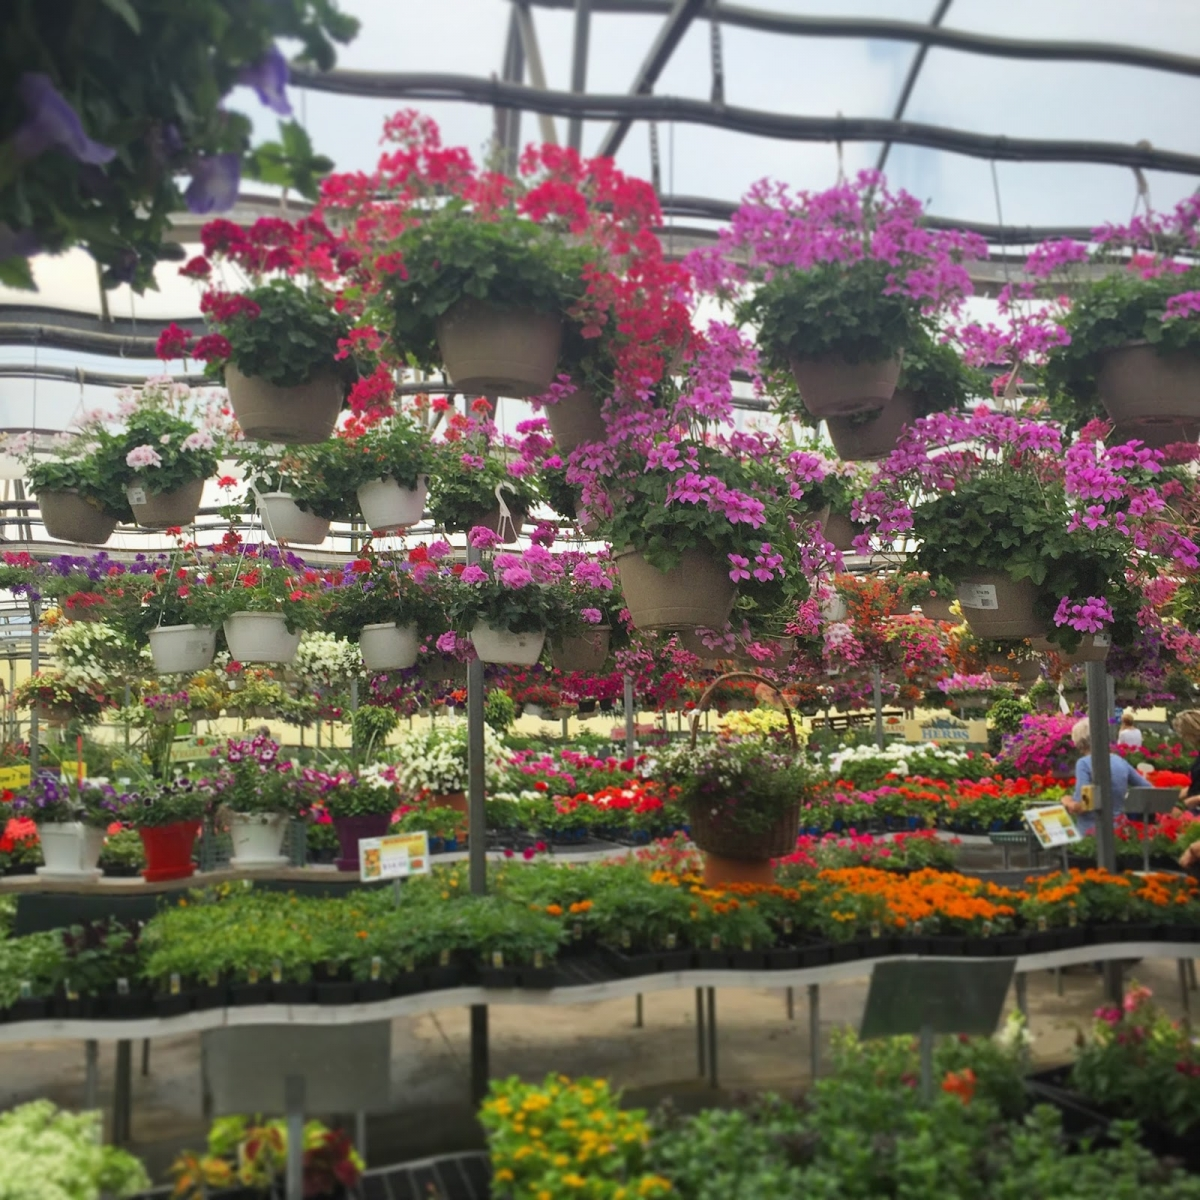 straders garden center columbus